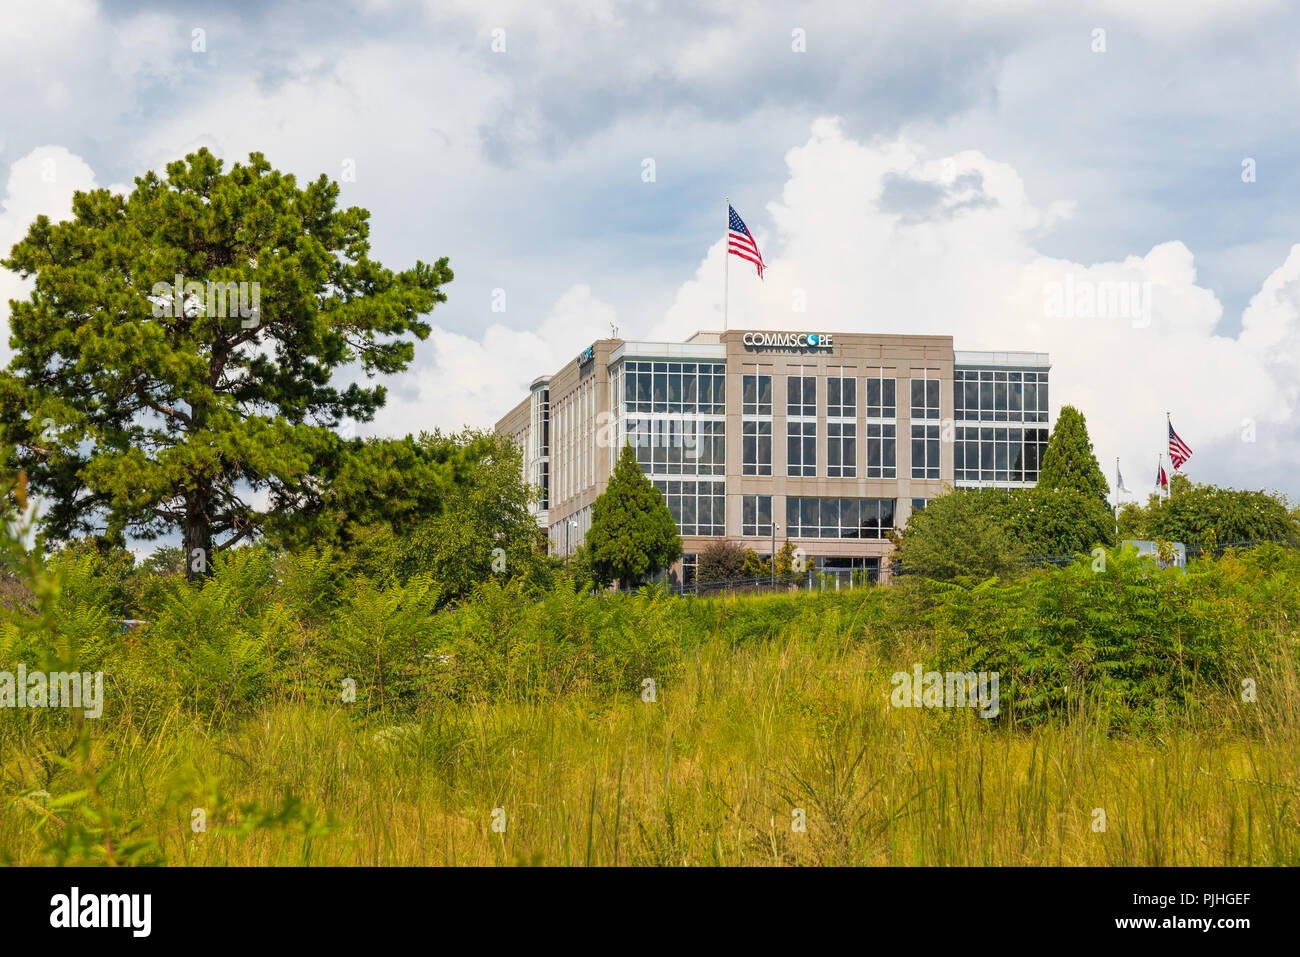 HICKORY, NC, USA-9/6/18: The Commscope corporate building, based in Hickory, stands beyond a green field with bushes and small trees. Stock Photo